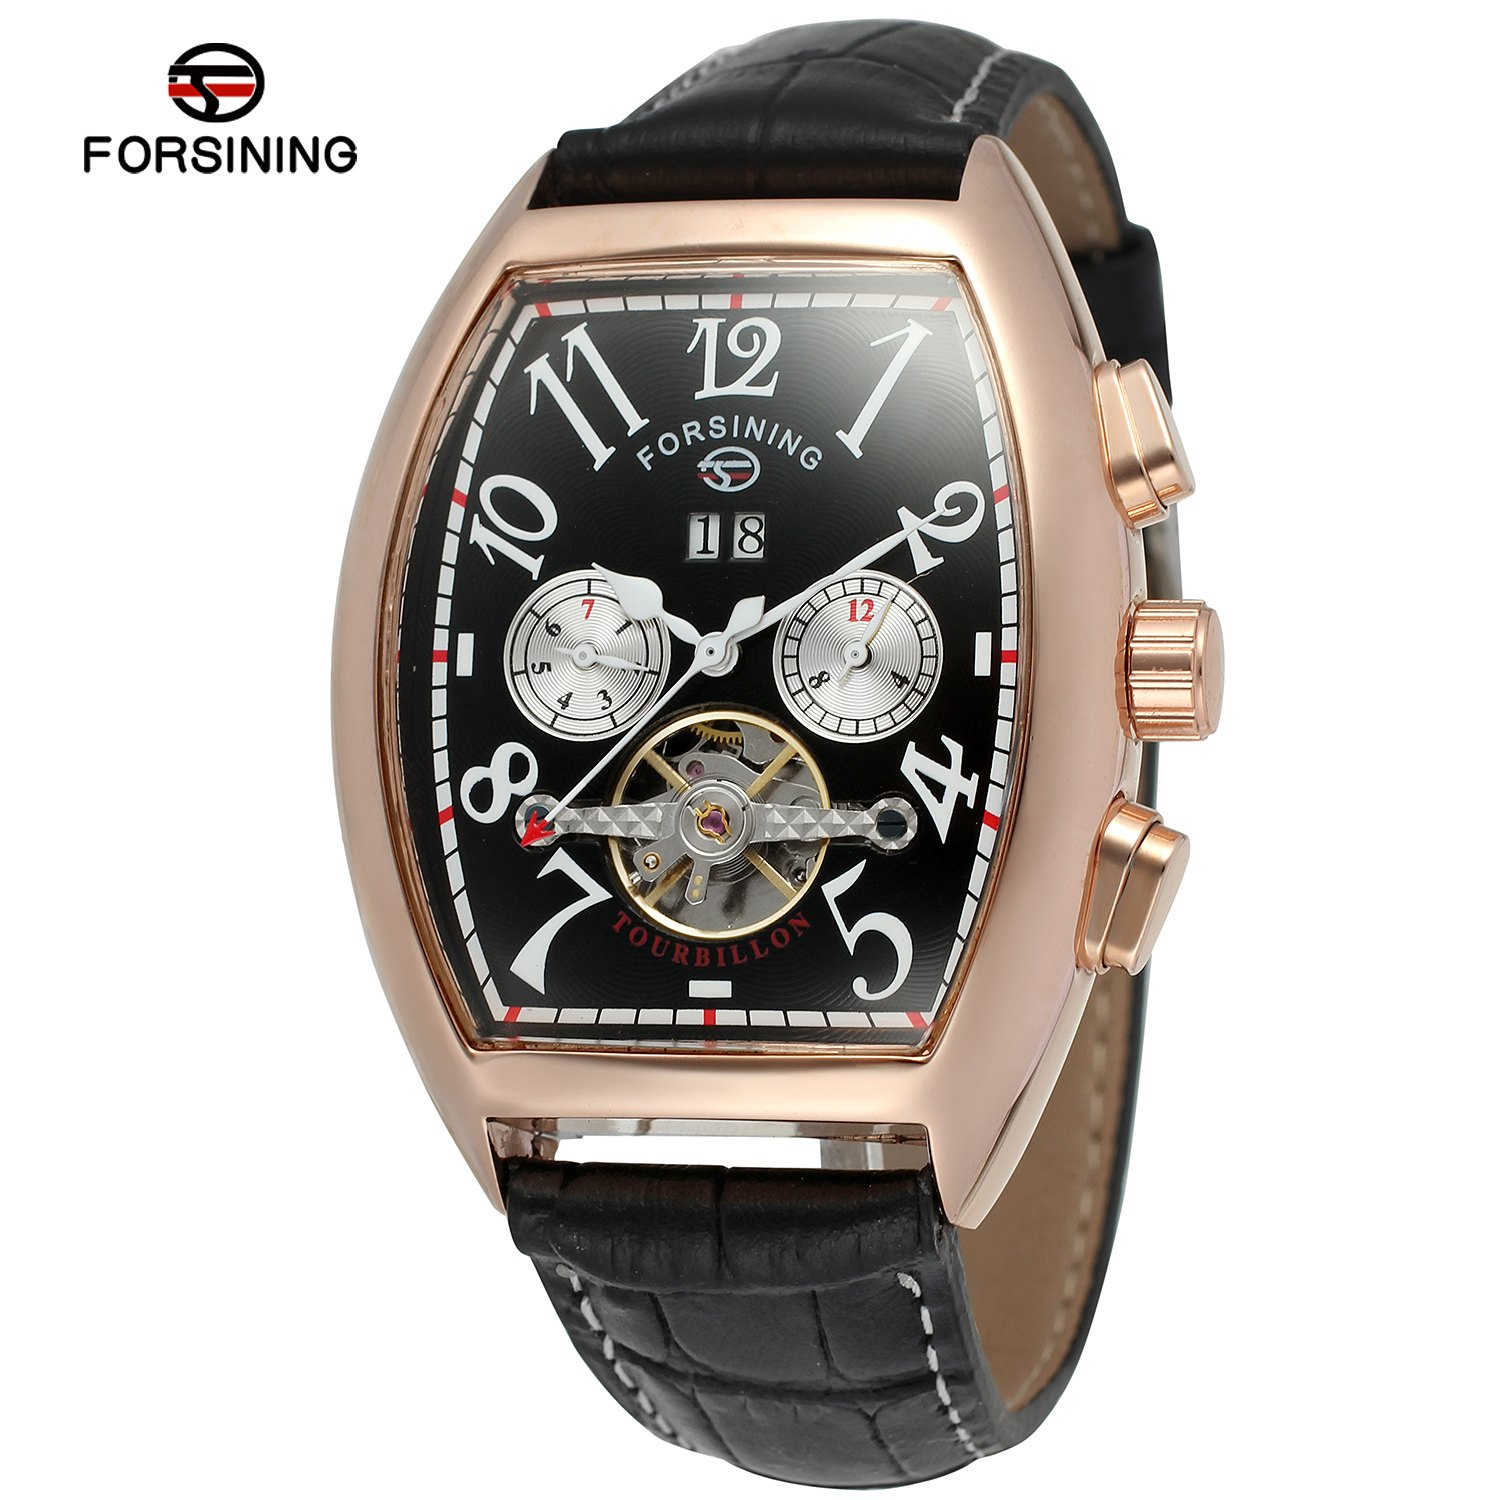 Forsining Date Display Tonneau Rose Gold Case Mens Watches Top Luxury Automatic Watch Leather Strap Clock Men Tourbillon Watch original binger mans automatic mechanical wrist watch date display watch self wind steel with gold wheel watches new luxury